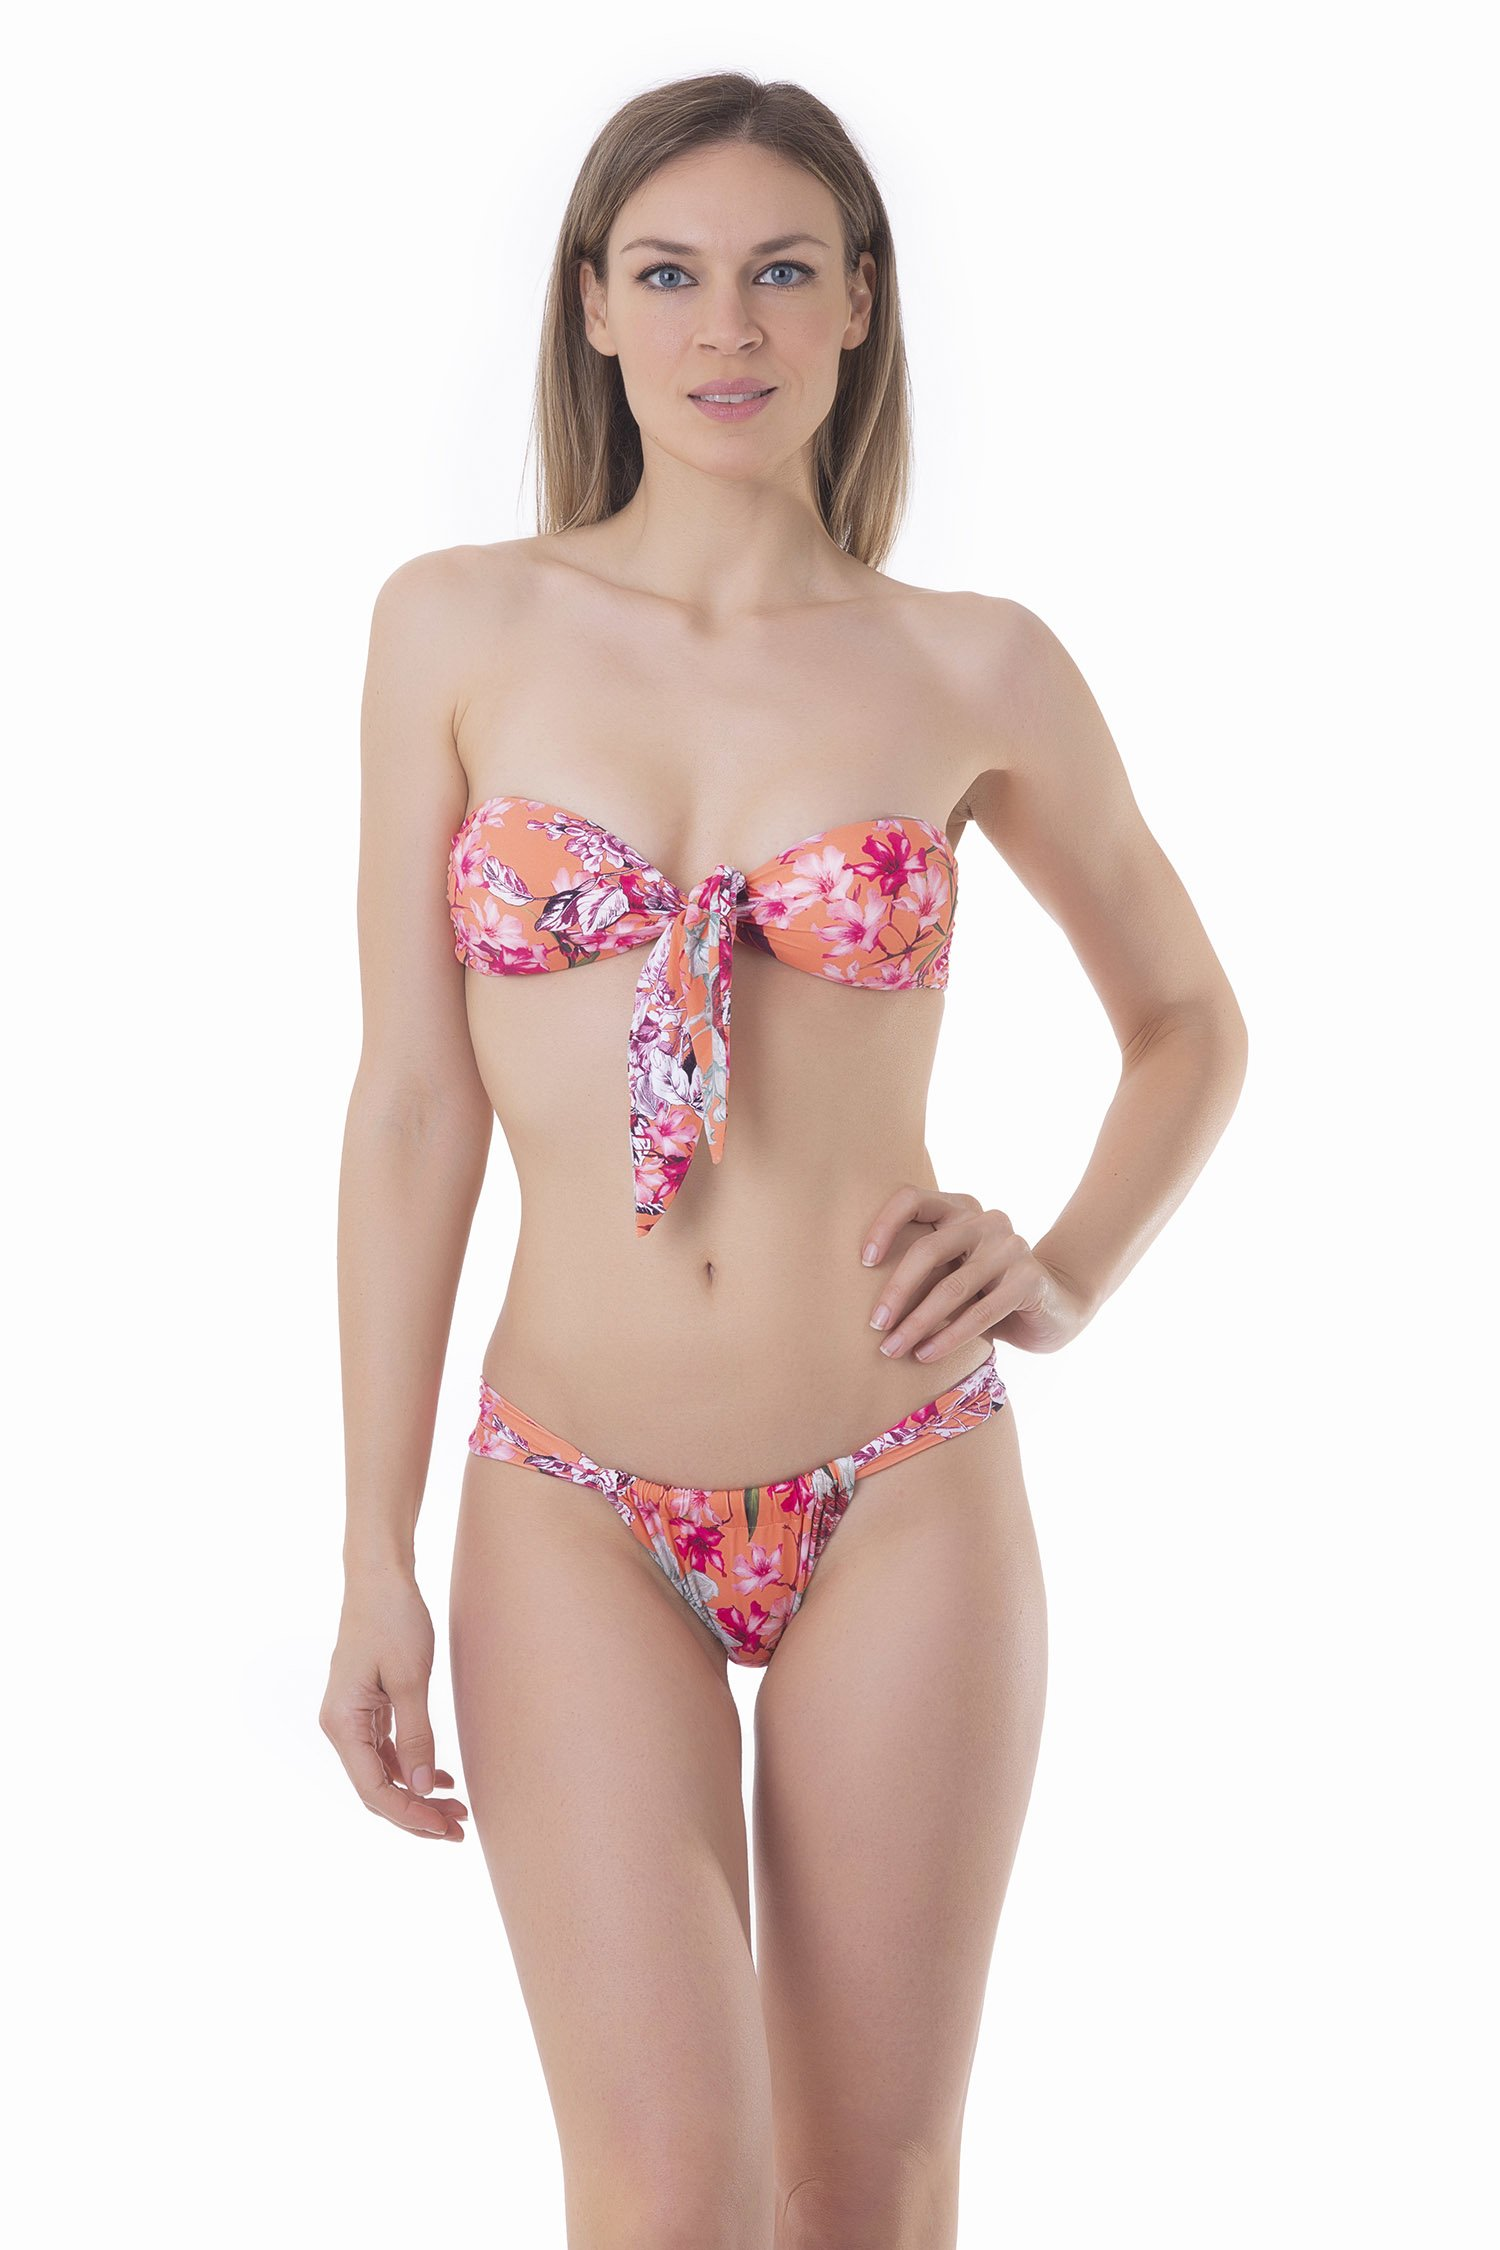 PRINTED BANDEAU BIKINI WITH CENTRAL KNOT AND CHEEKY BOTTOM - Fiori Pesco